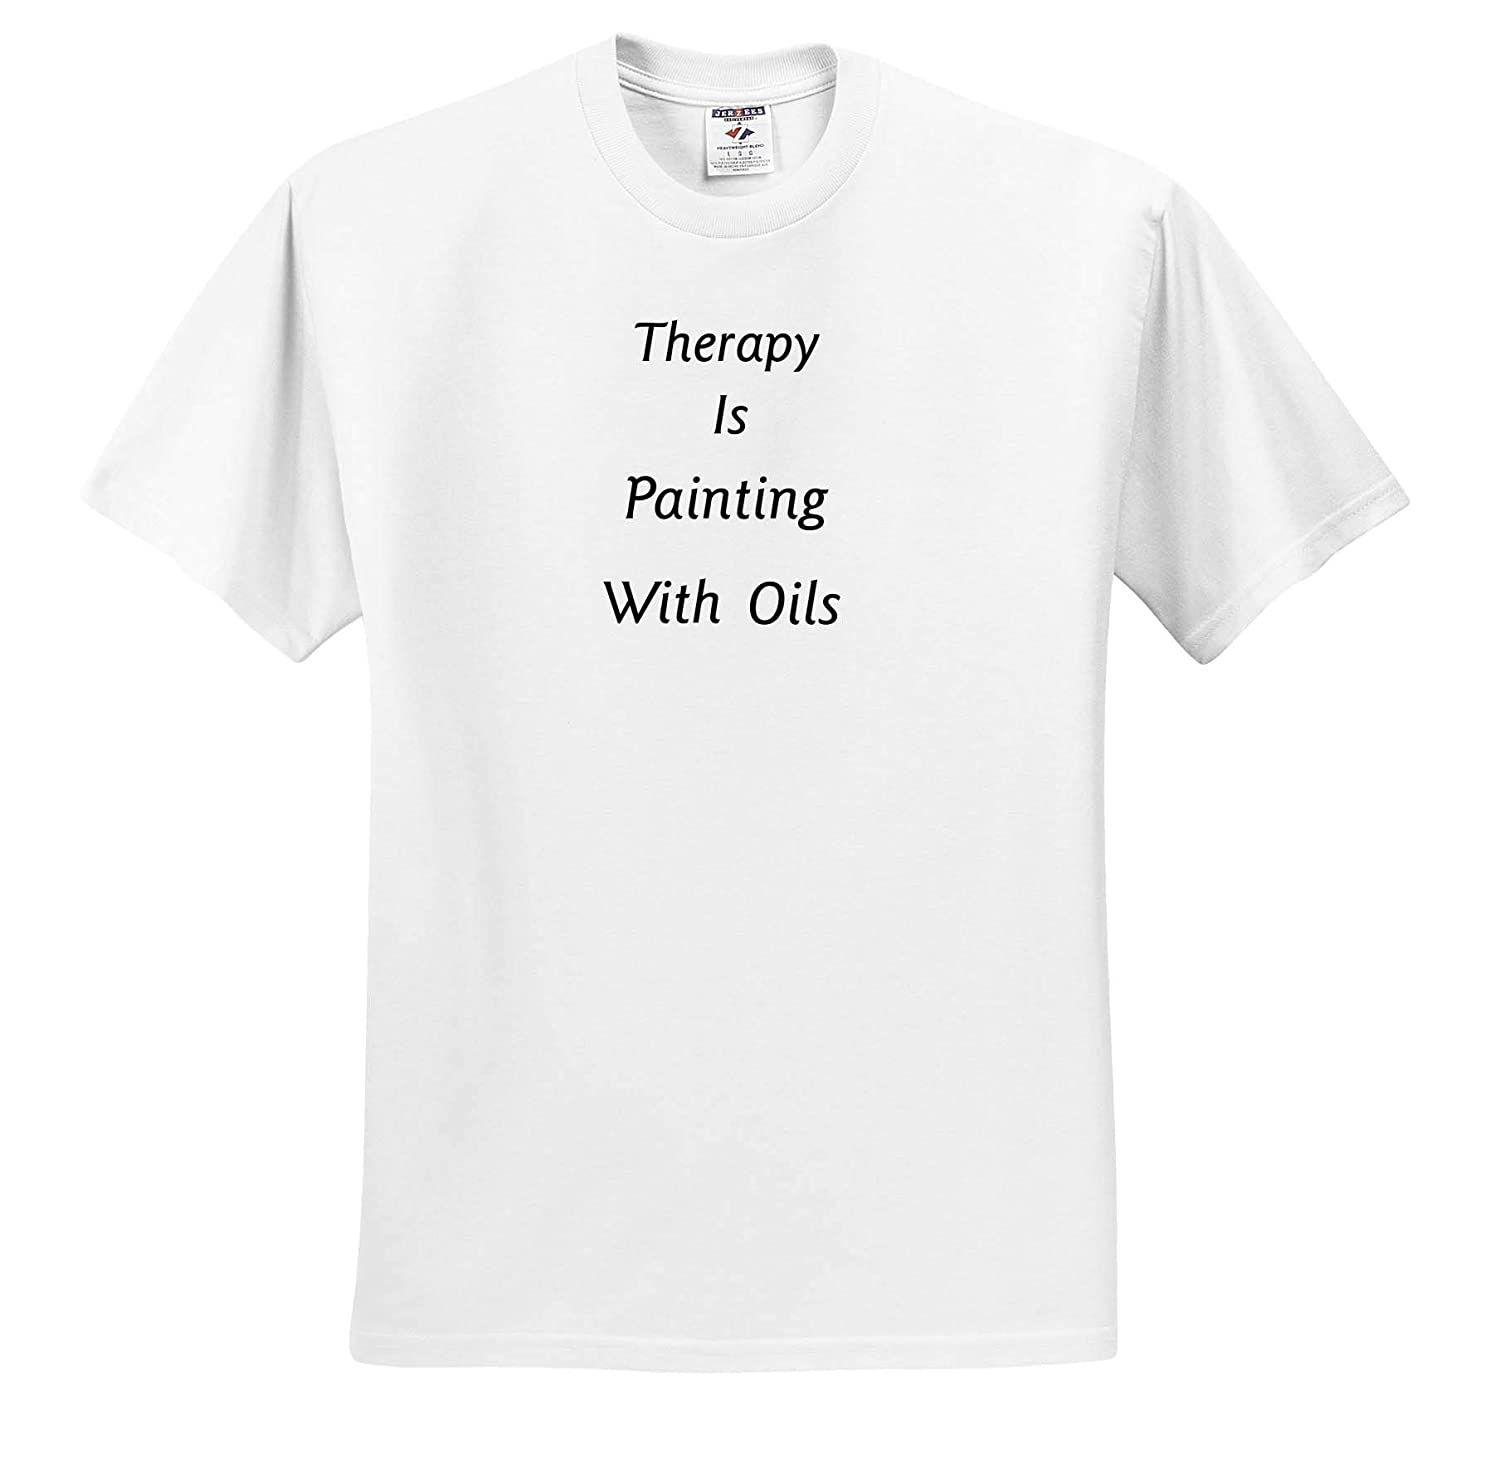 ts/_311381 Image of Therapy is Painting with Oils in Bold Words Therapy is Adult T-Shirt XL 3dRose Lens Art by Florene